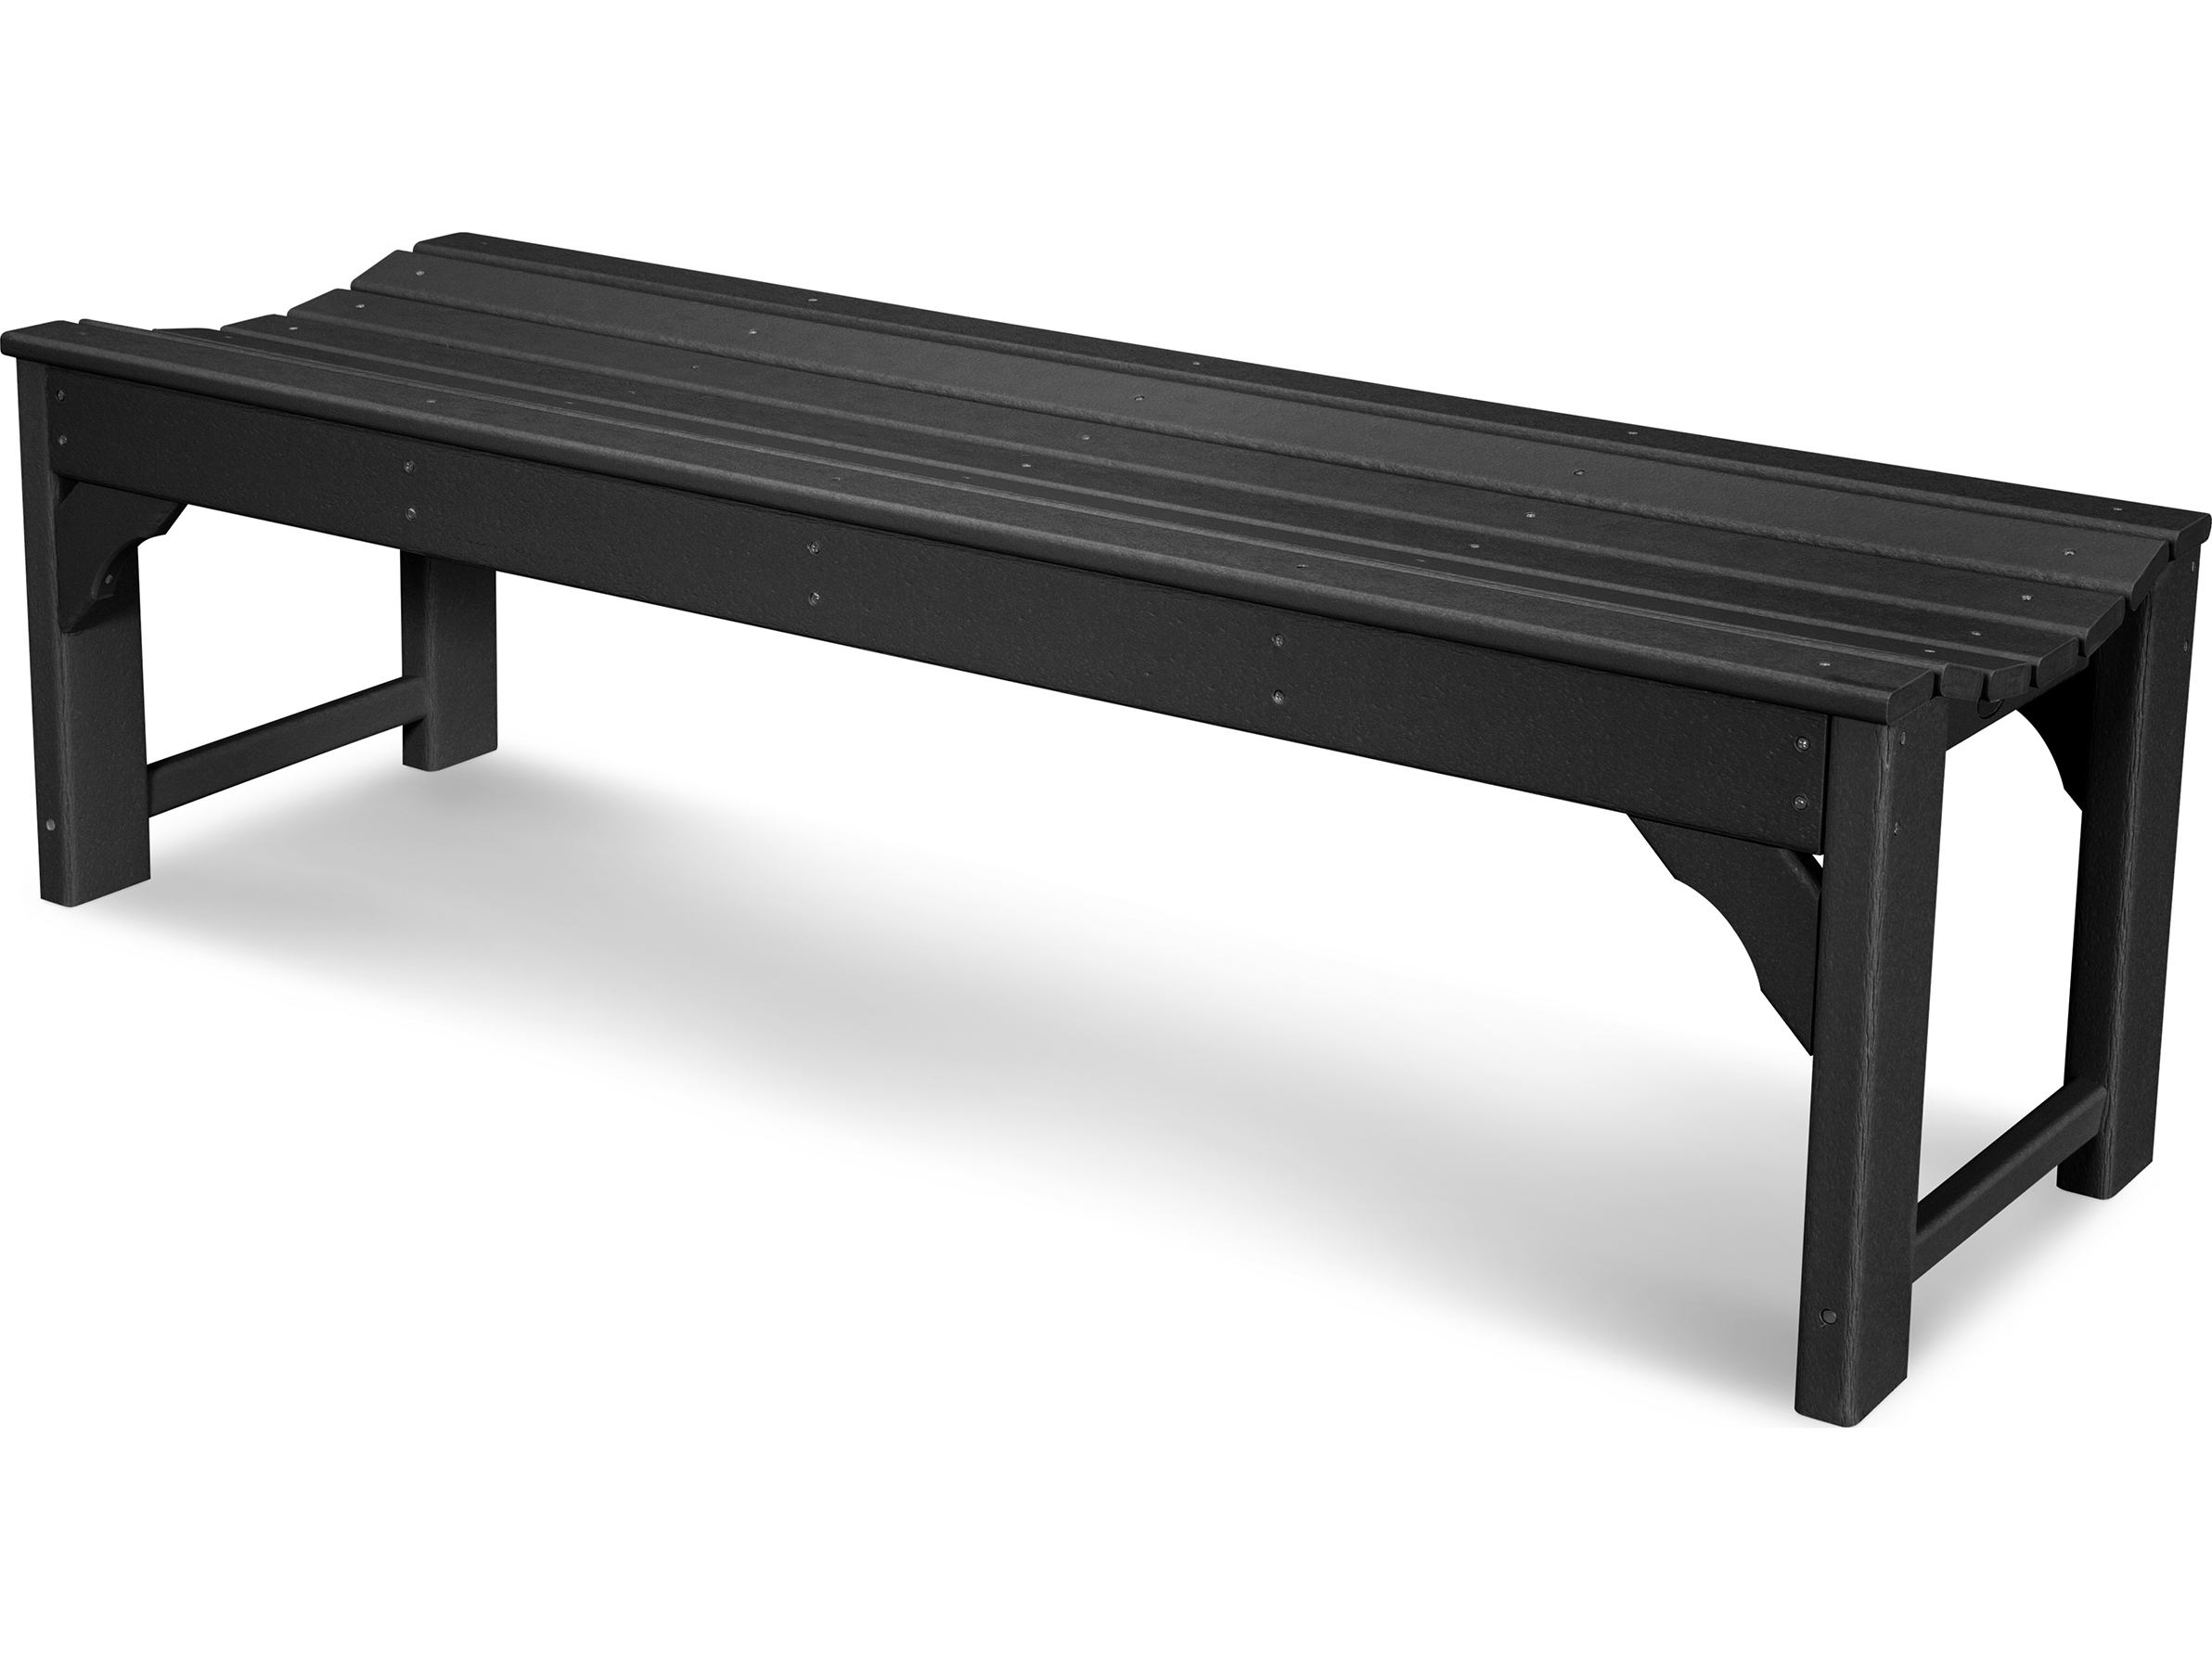 Polywood traditional garden recycled plastic 60 side bench bab160 Polywood bench